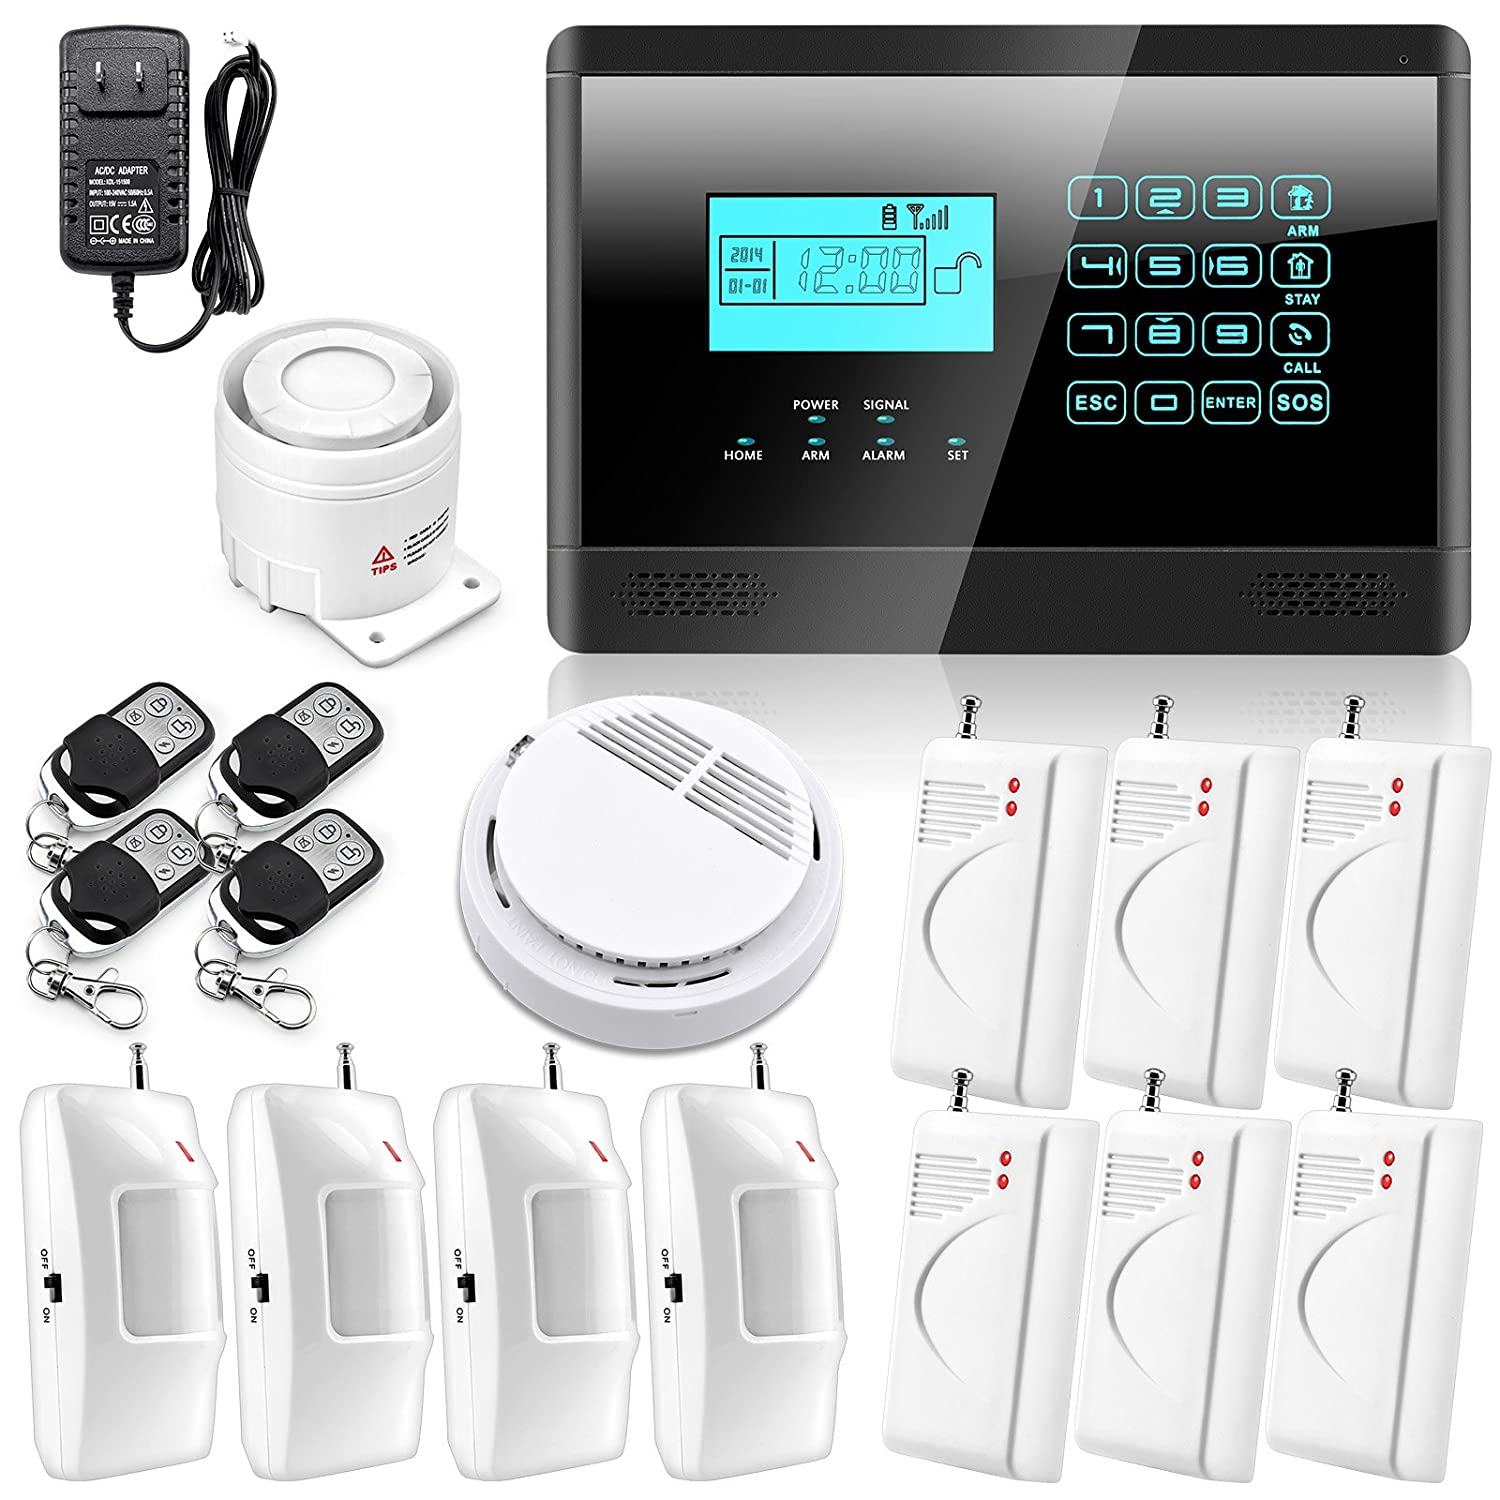 Wolf-Guard DIY Touch Keypad Wireless GSM SMS Autodial Smart Home Security